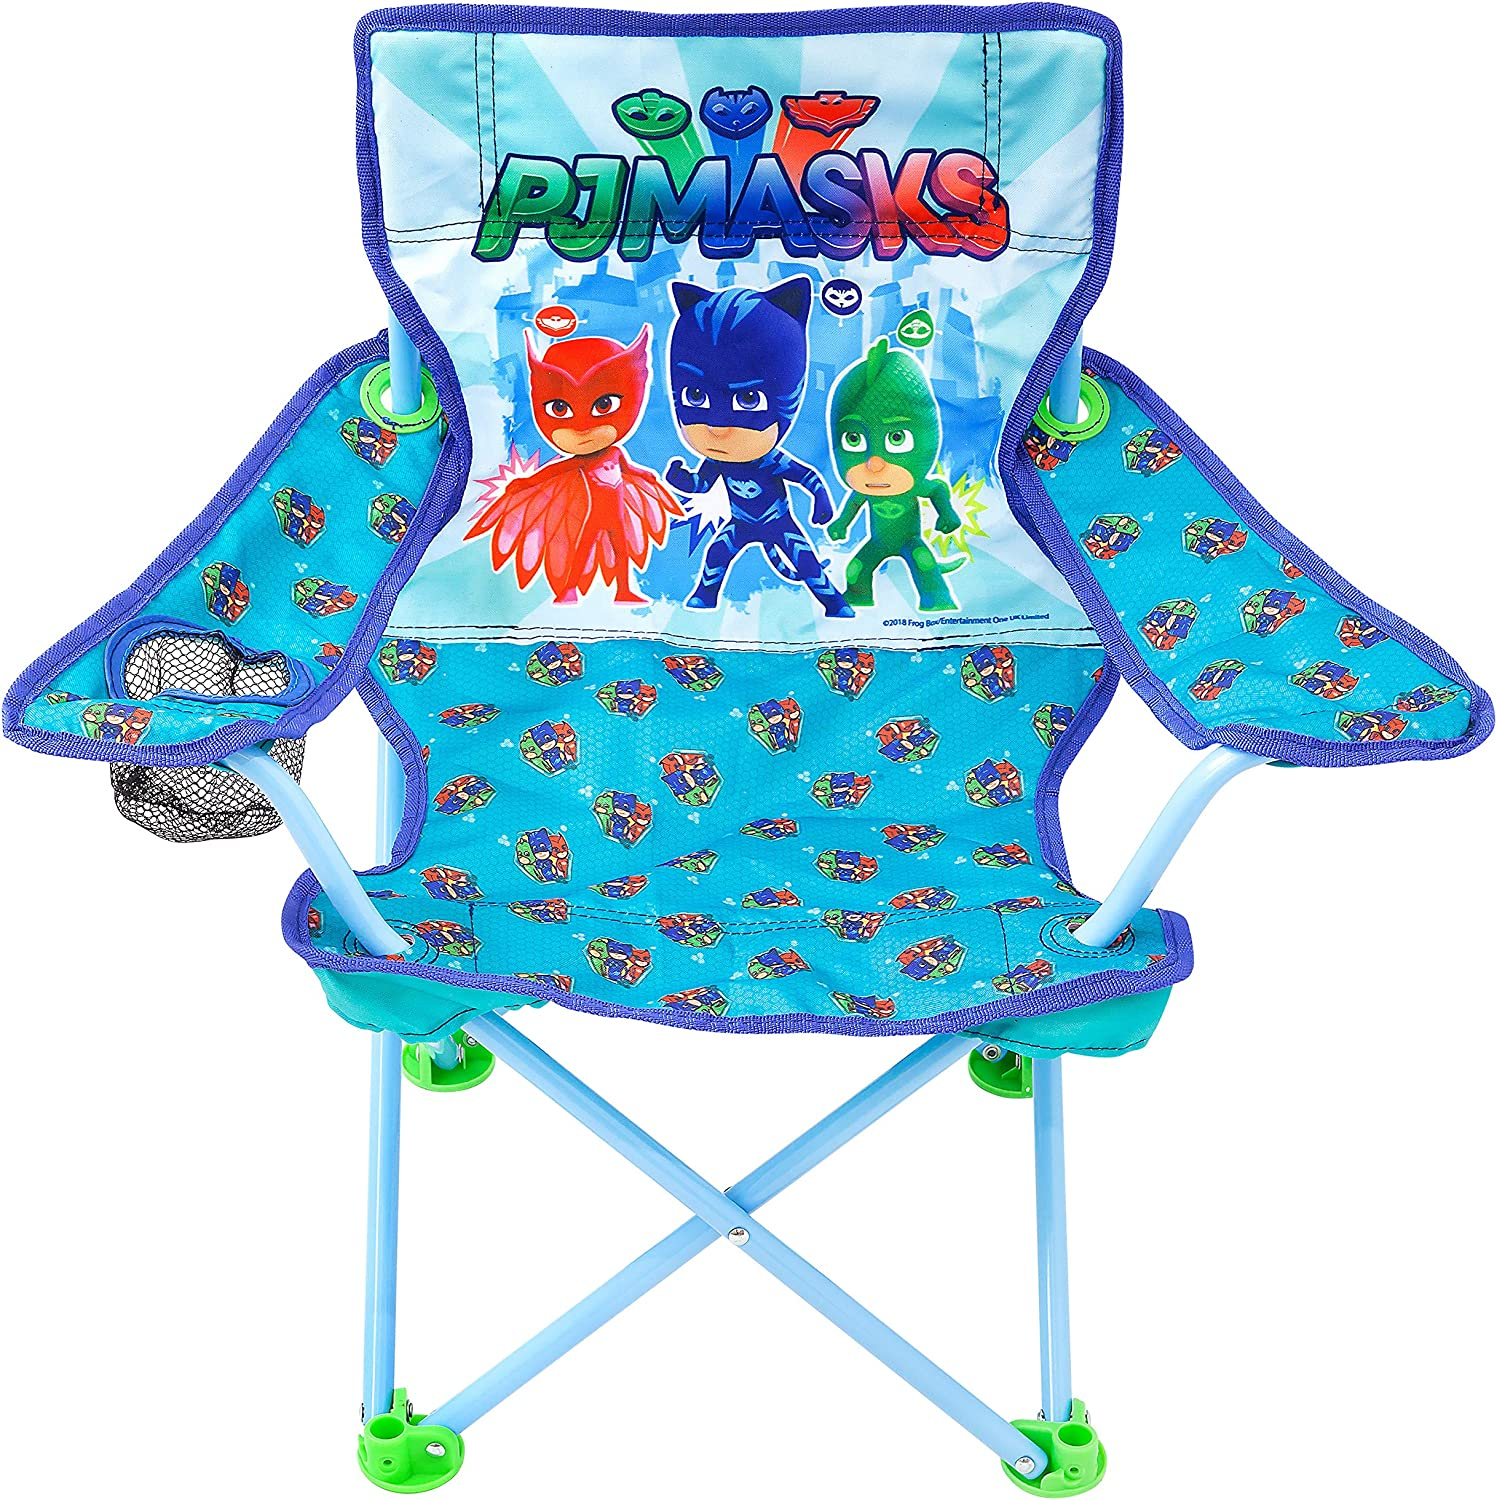 PJ Masks Camp Chair for Kids, Portable Camping Fold N Go Chair with Carry Bag